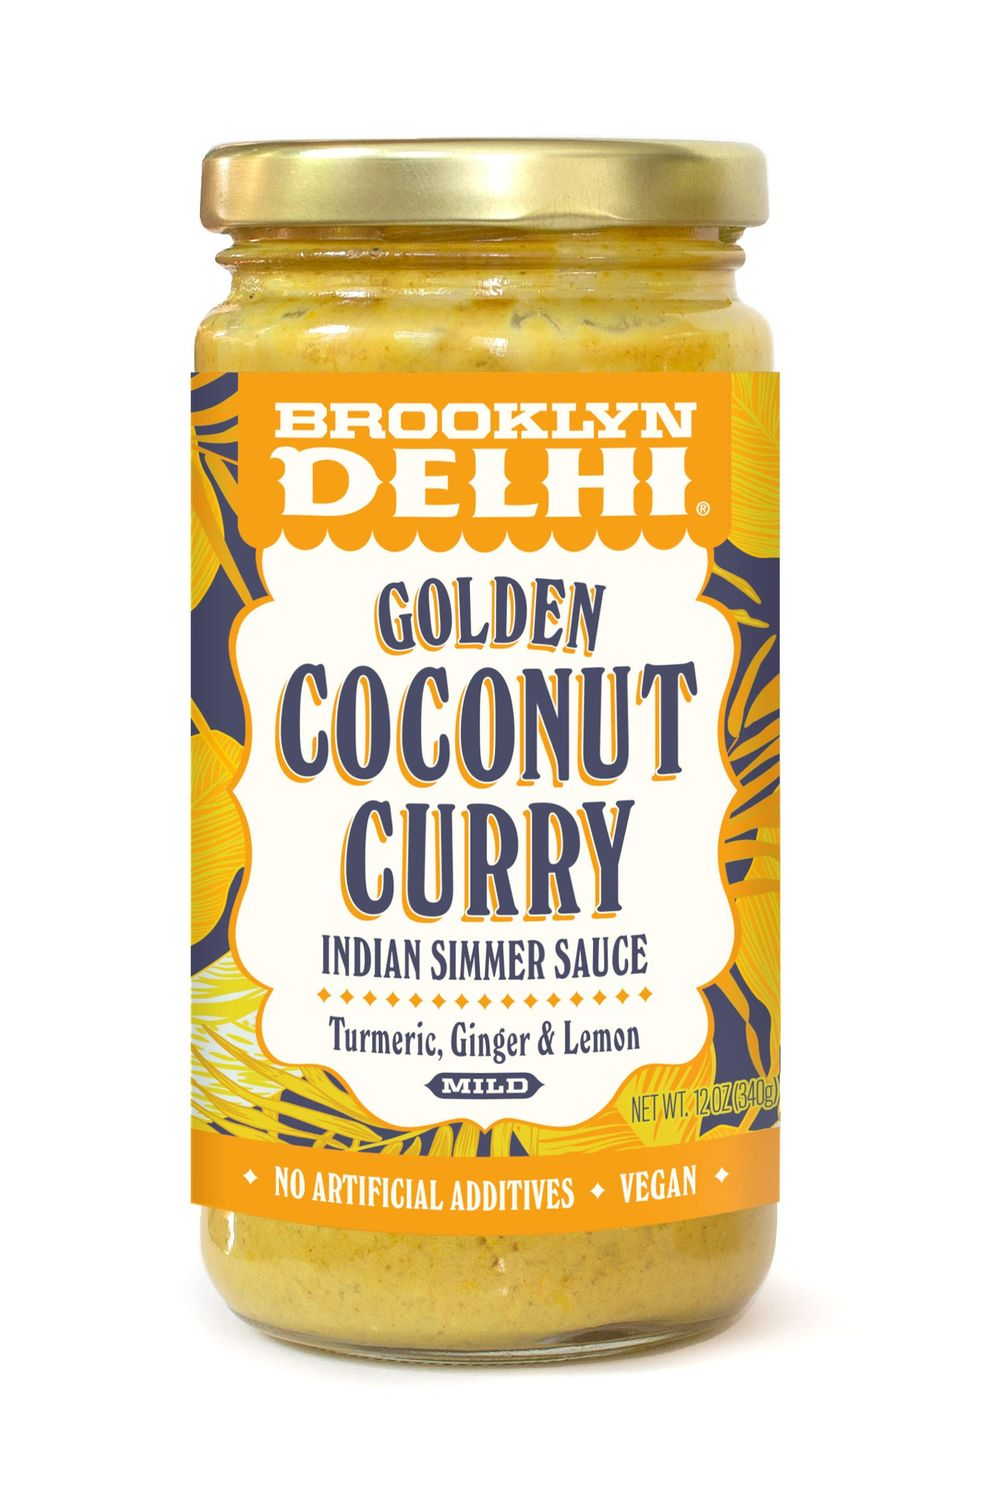 Golden Coconut Curry